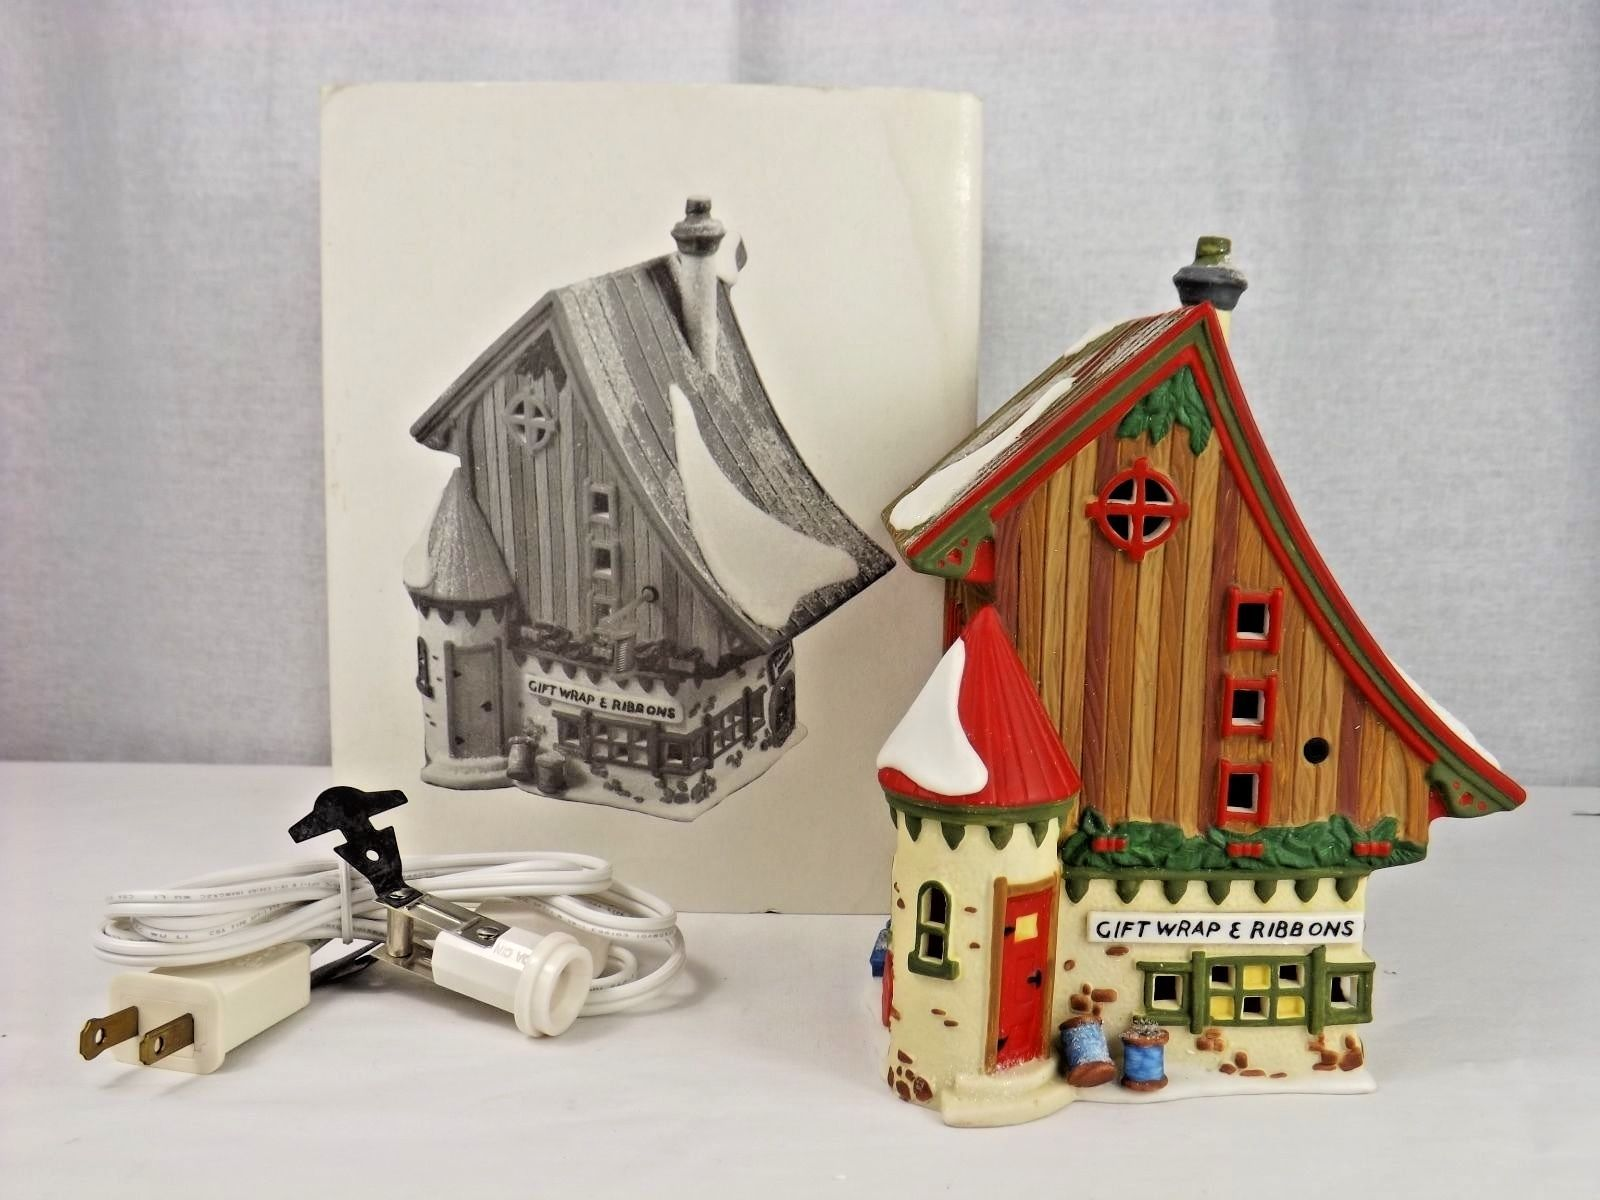 Dept 56 North Pole Series Gift Wrap & Ribbons 56390 - Department 56 - In Box - $15.00